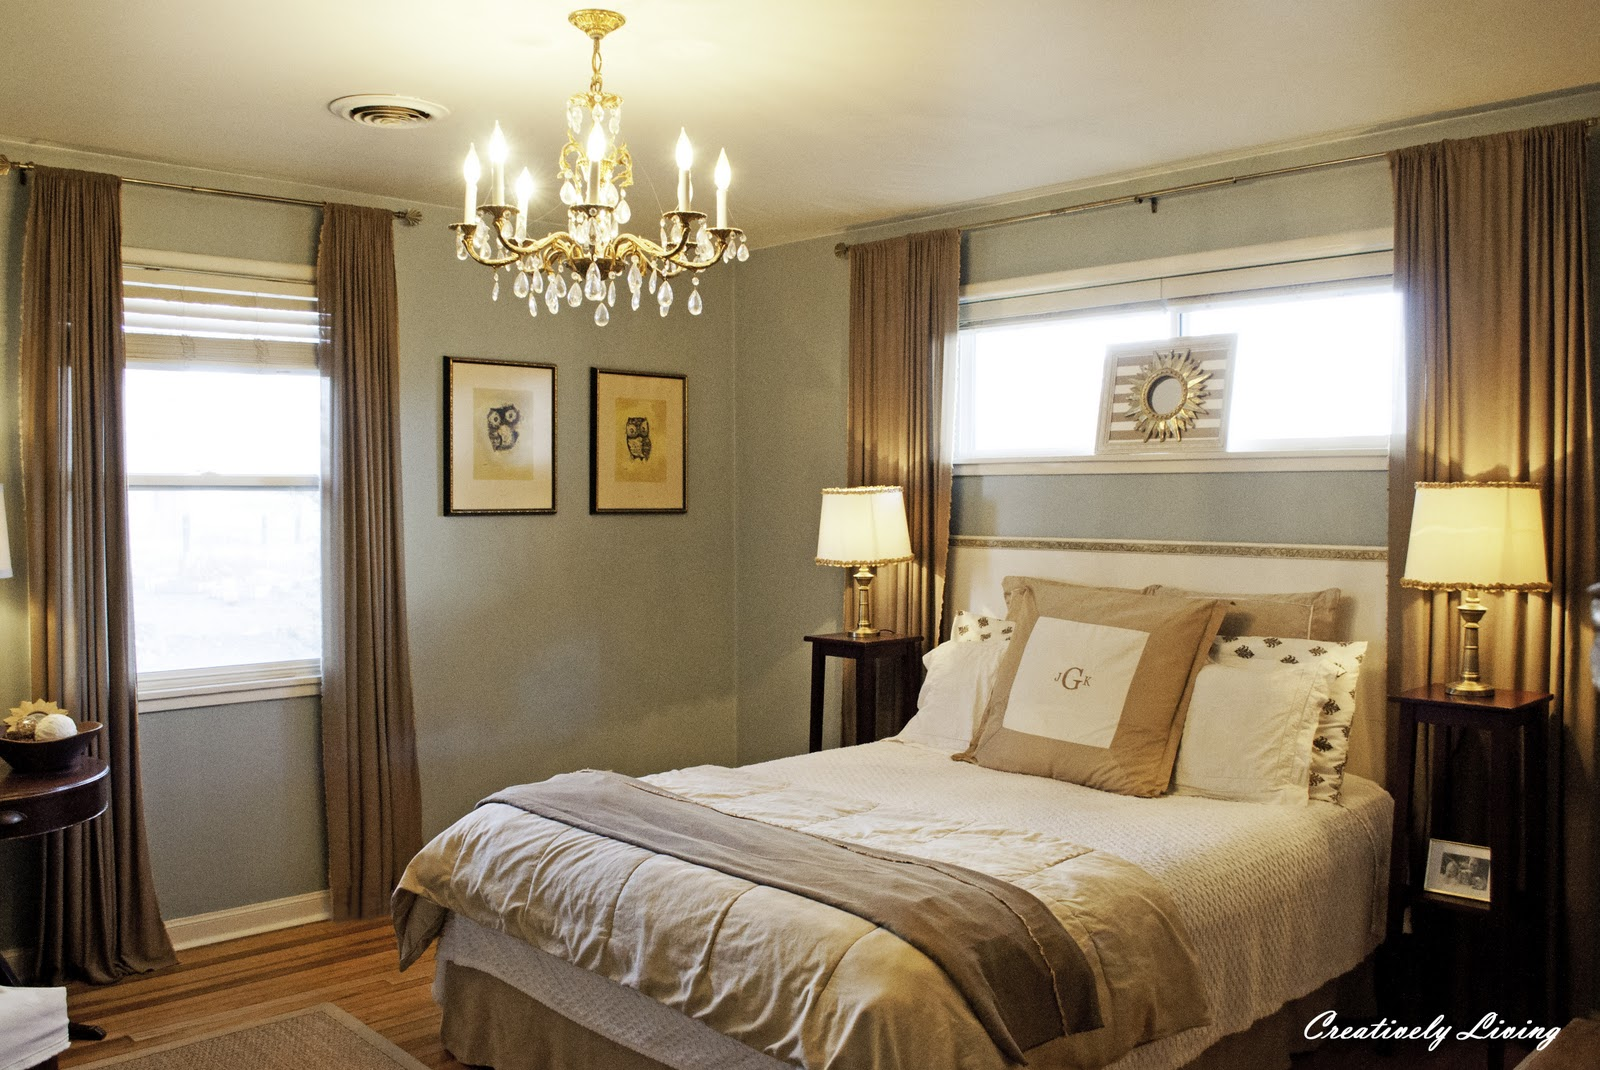 from gardners 2 bergers reader feater romantic bedroom reveal. Black Bedroom Furniture Sets. Home Design Ideas